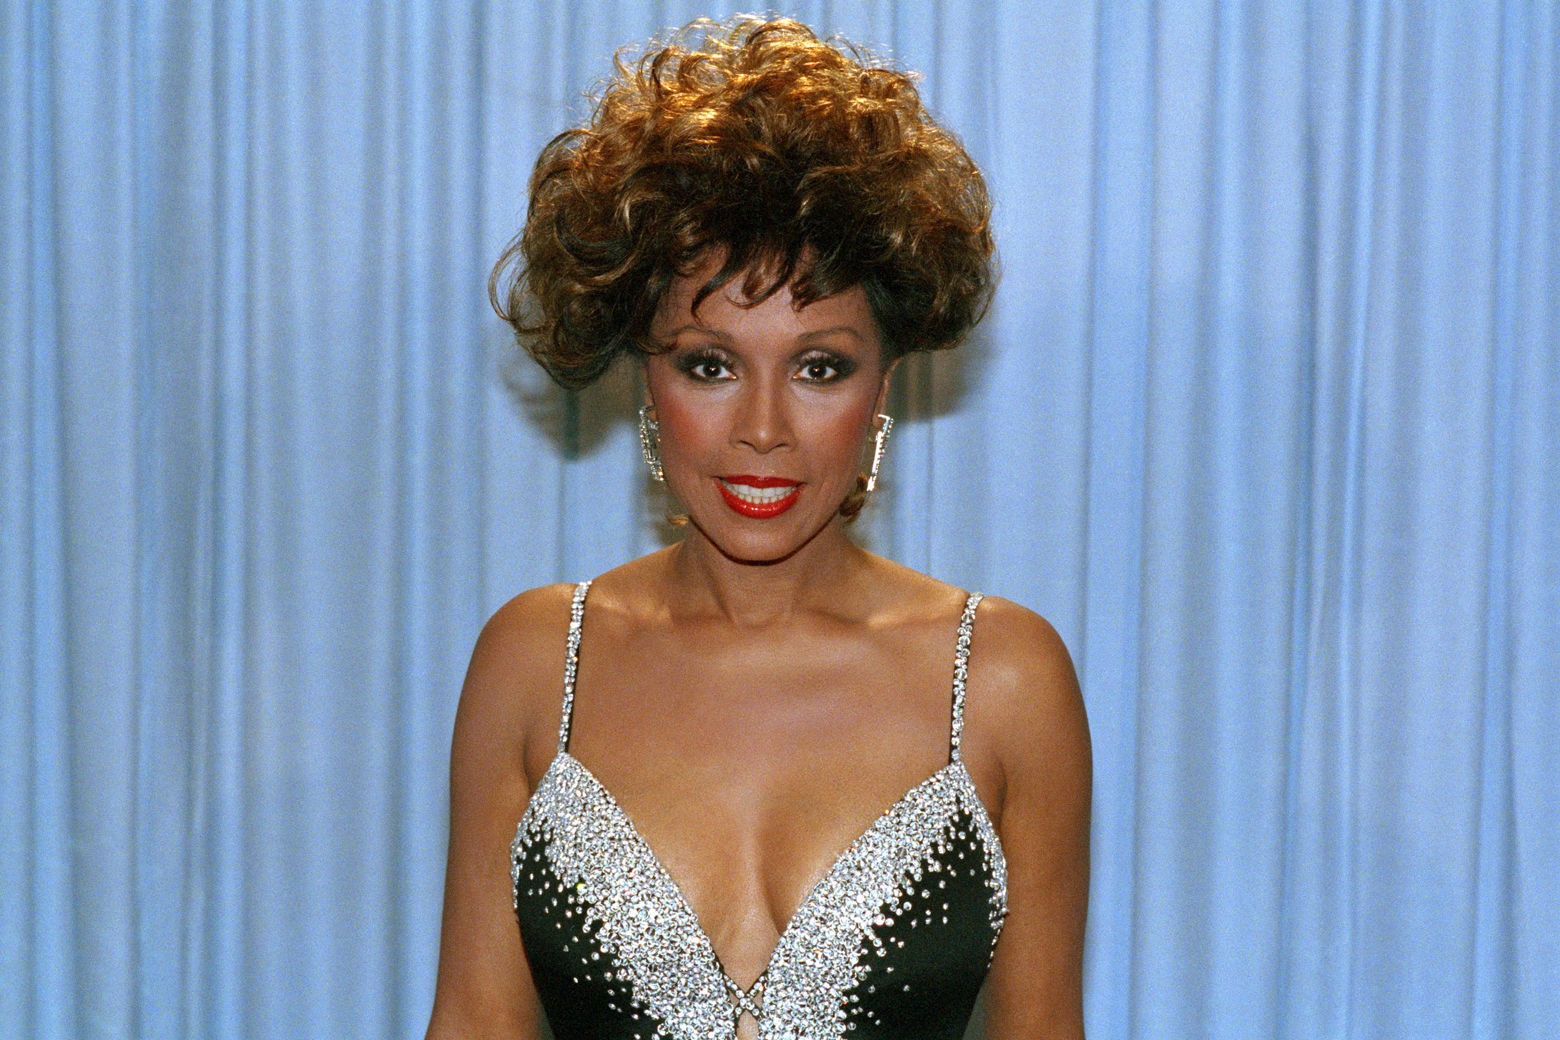 Actress Diahann Carroll at the Emmy Awards in Pasadena, Calif. on Sept. 22, 1985. (AP Photo/UT)